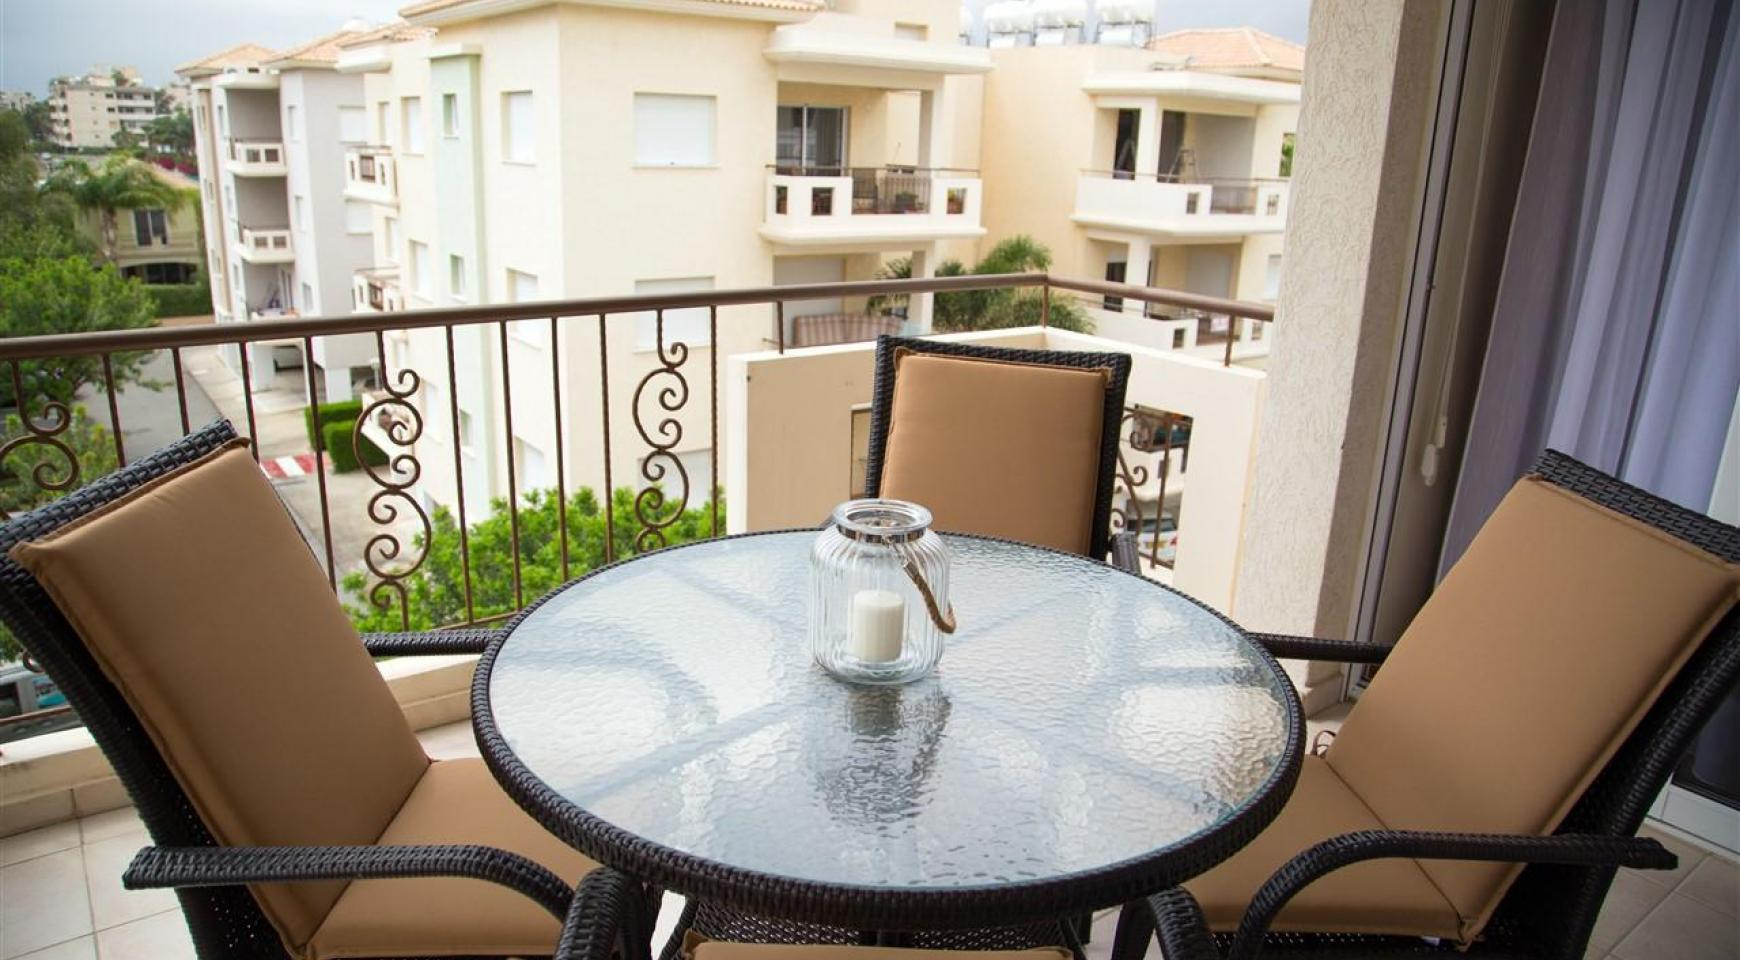 2 Bedroom Apartment in the Complex near the Sea - 24